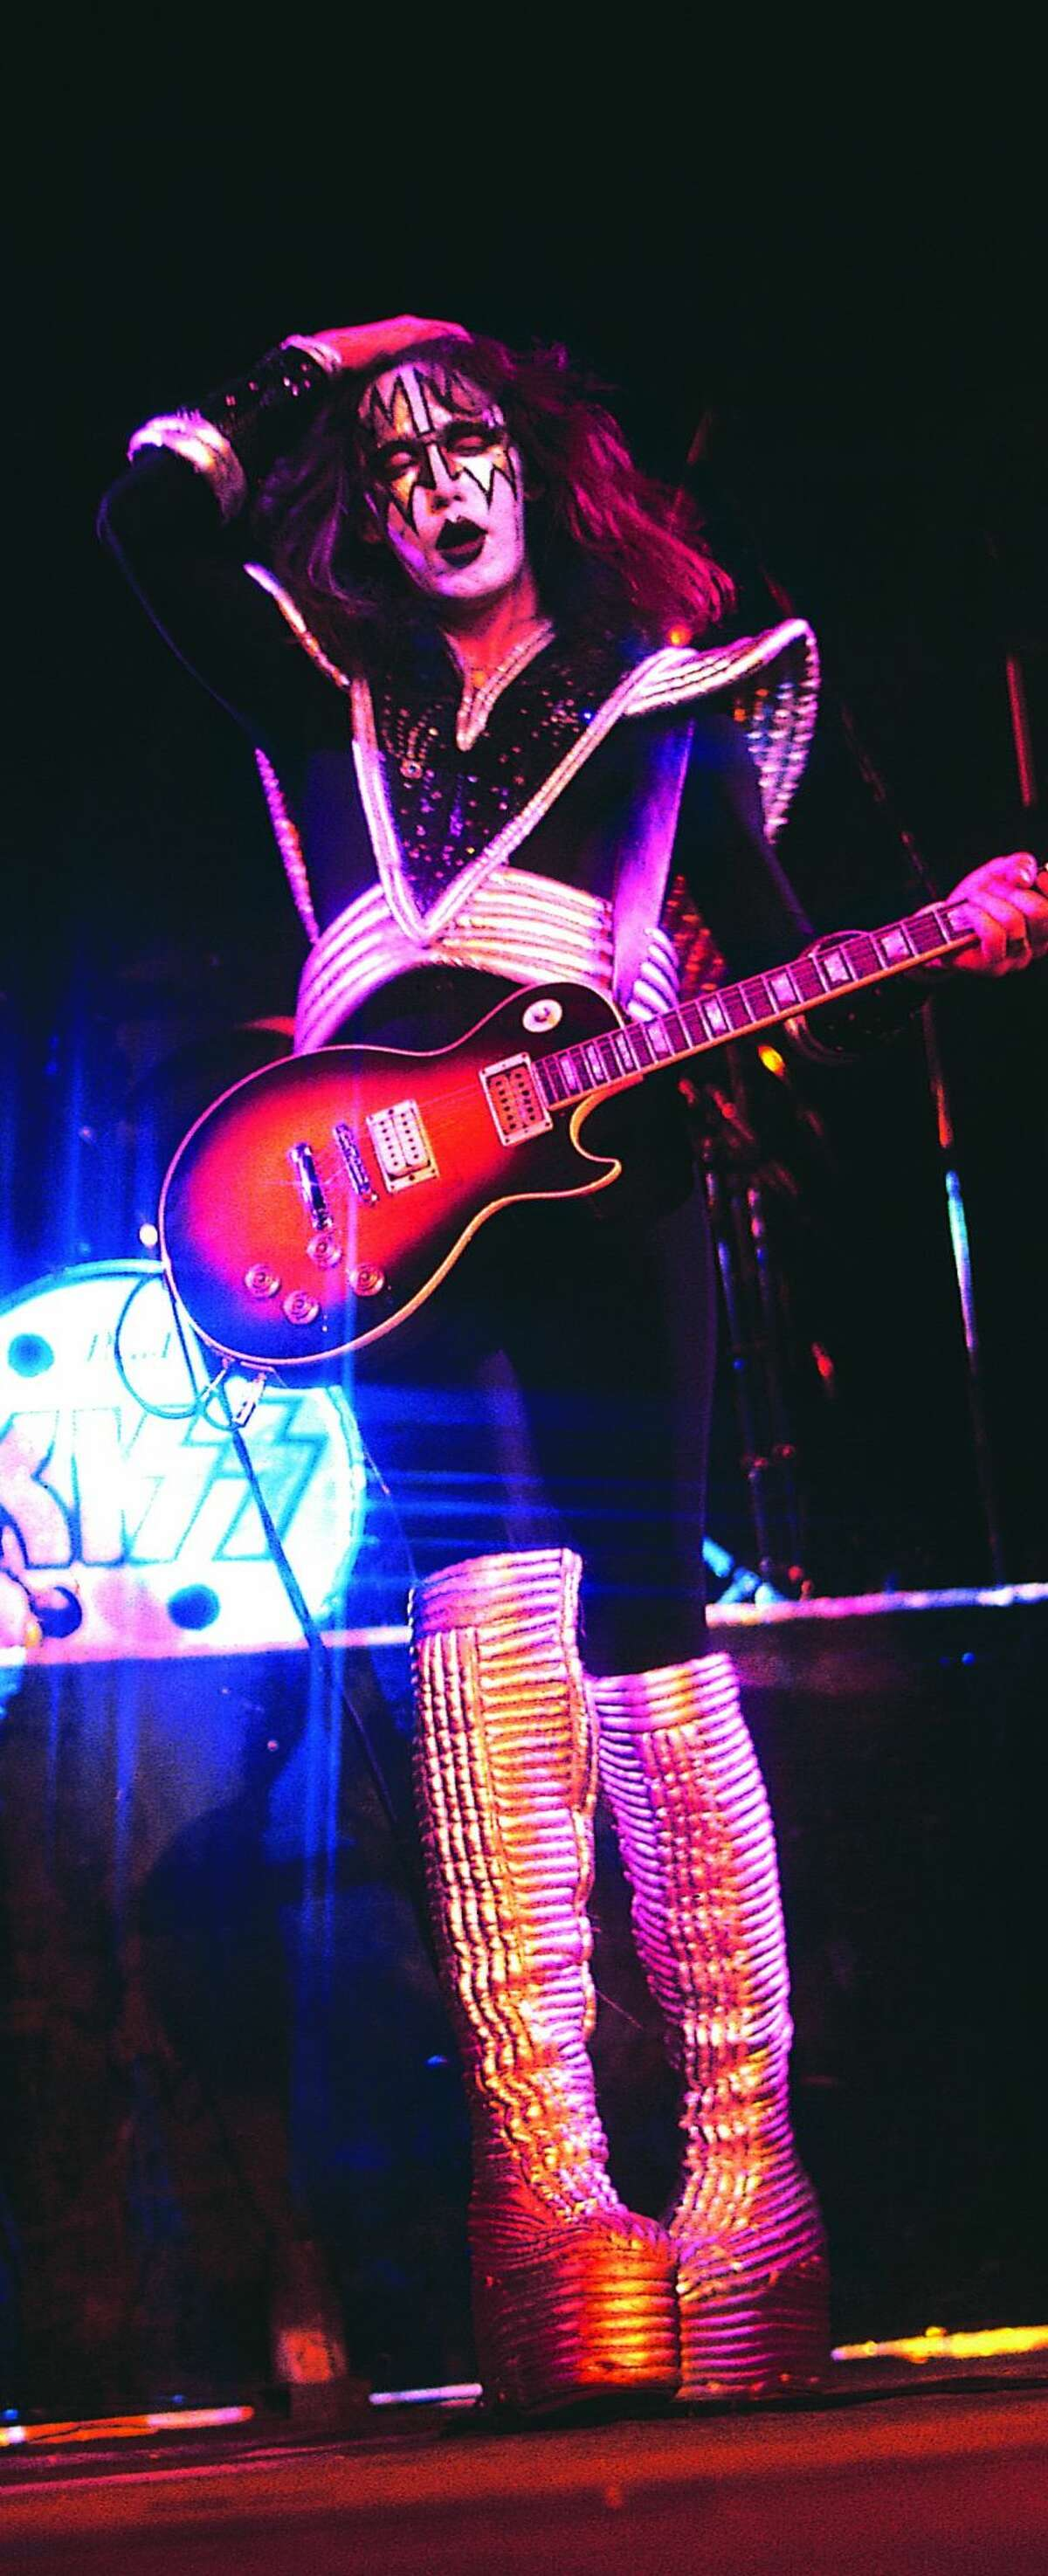 Lead guitarist Ace Frehley of American hard rock band KISS performing at The Summit on August 13, 1976 in Houston, TX.